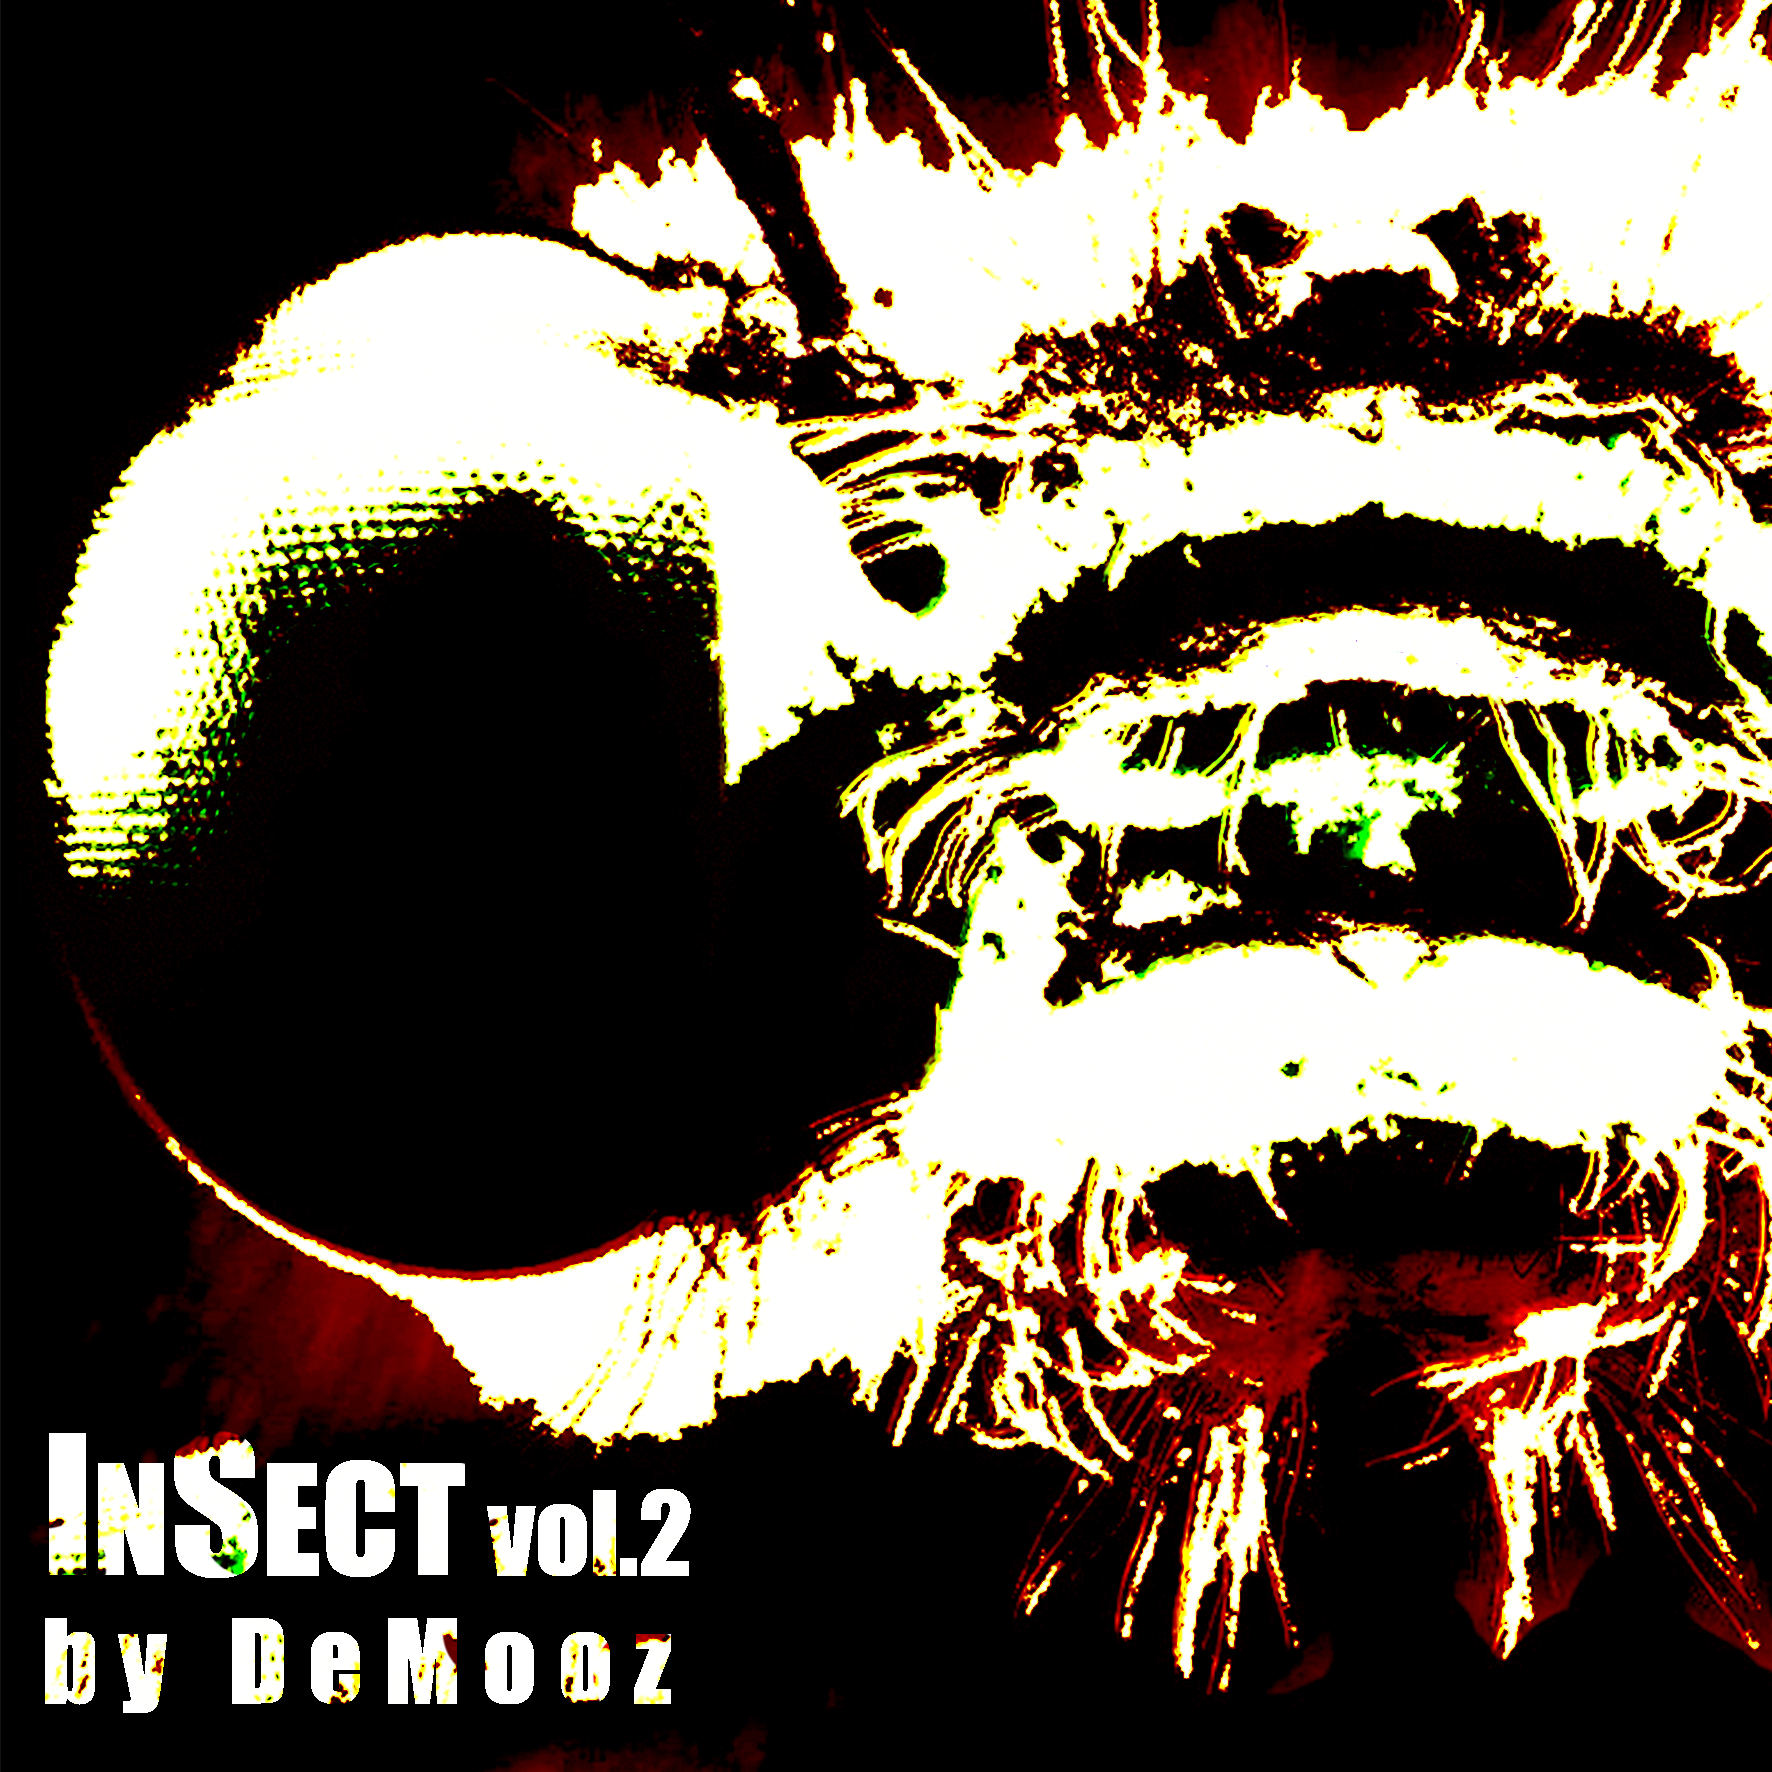 InSect vol.2 by DeMooz